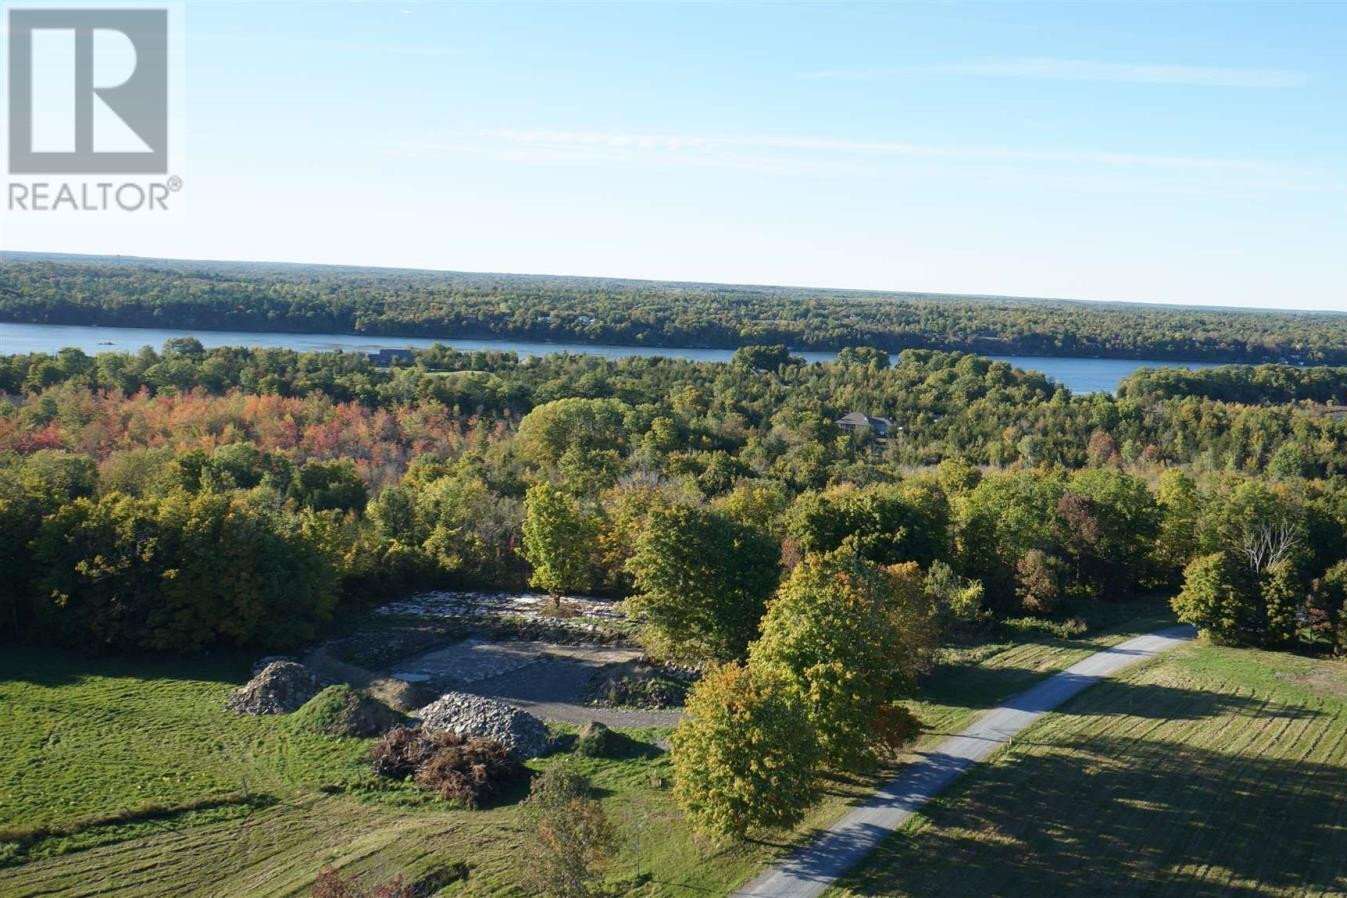 Residential property for sale at 1 Applewood Ln South Frontenac Ontario - MLS: K20004576a